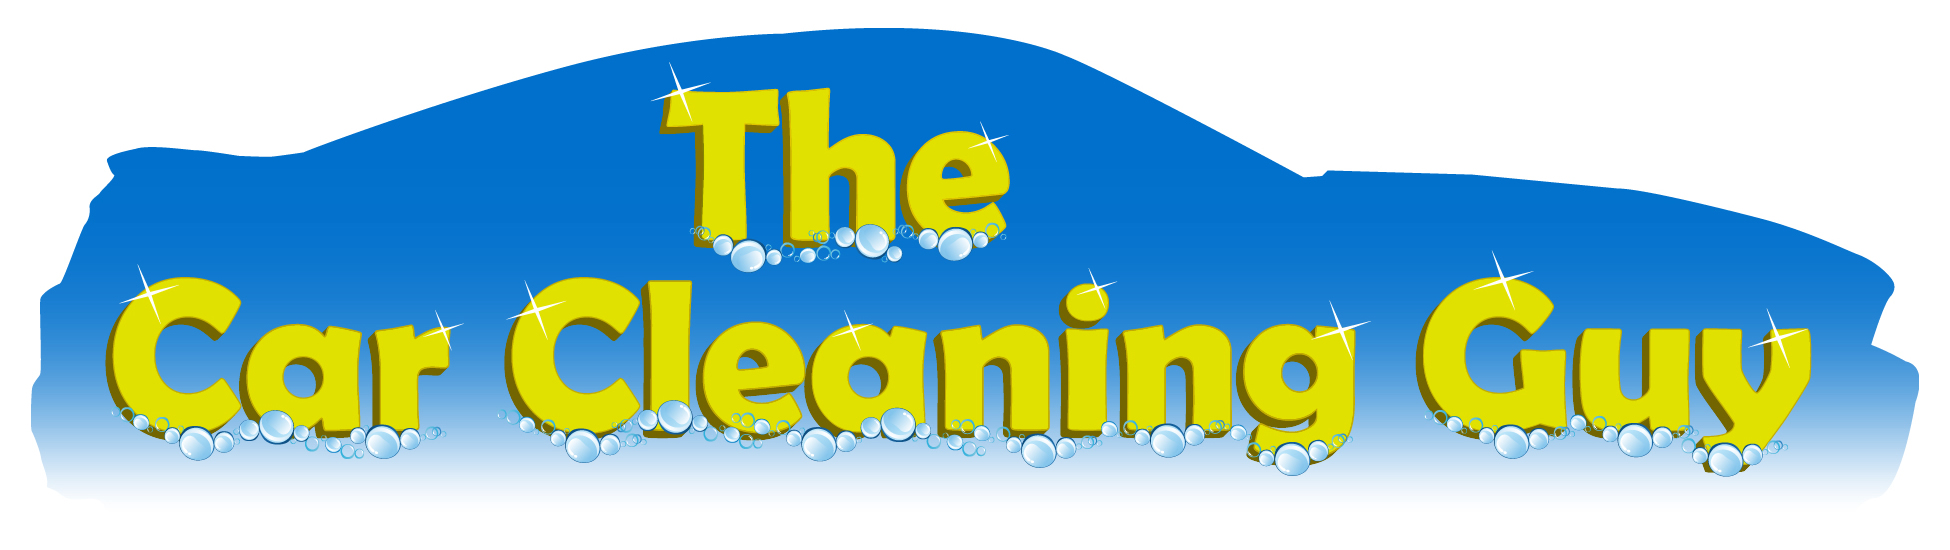 Where Can I Find A Mobile Car Cleaning Service In Adelaide Metro